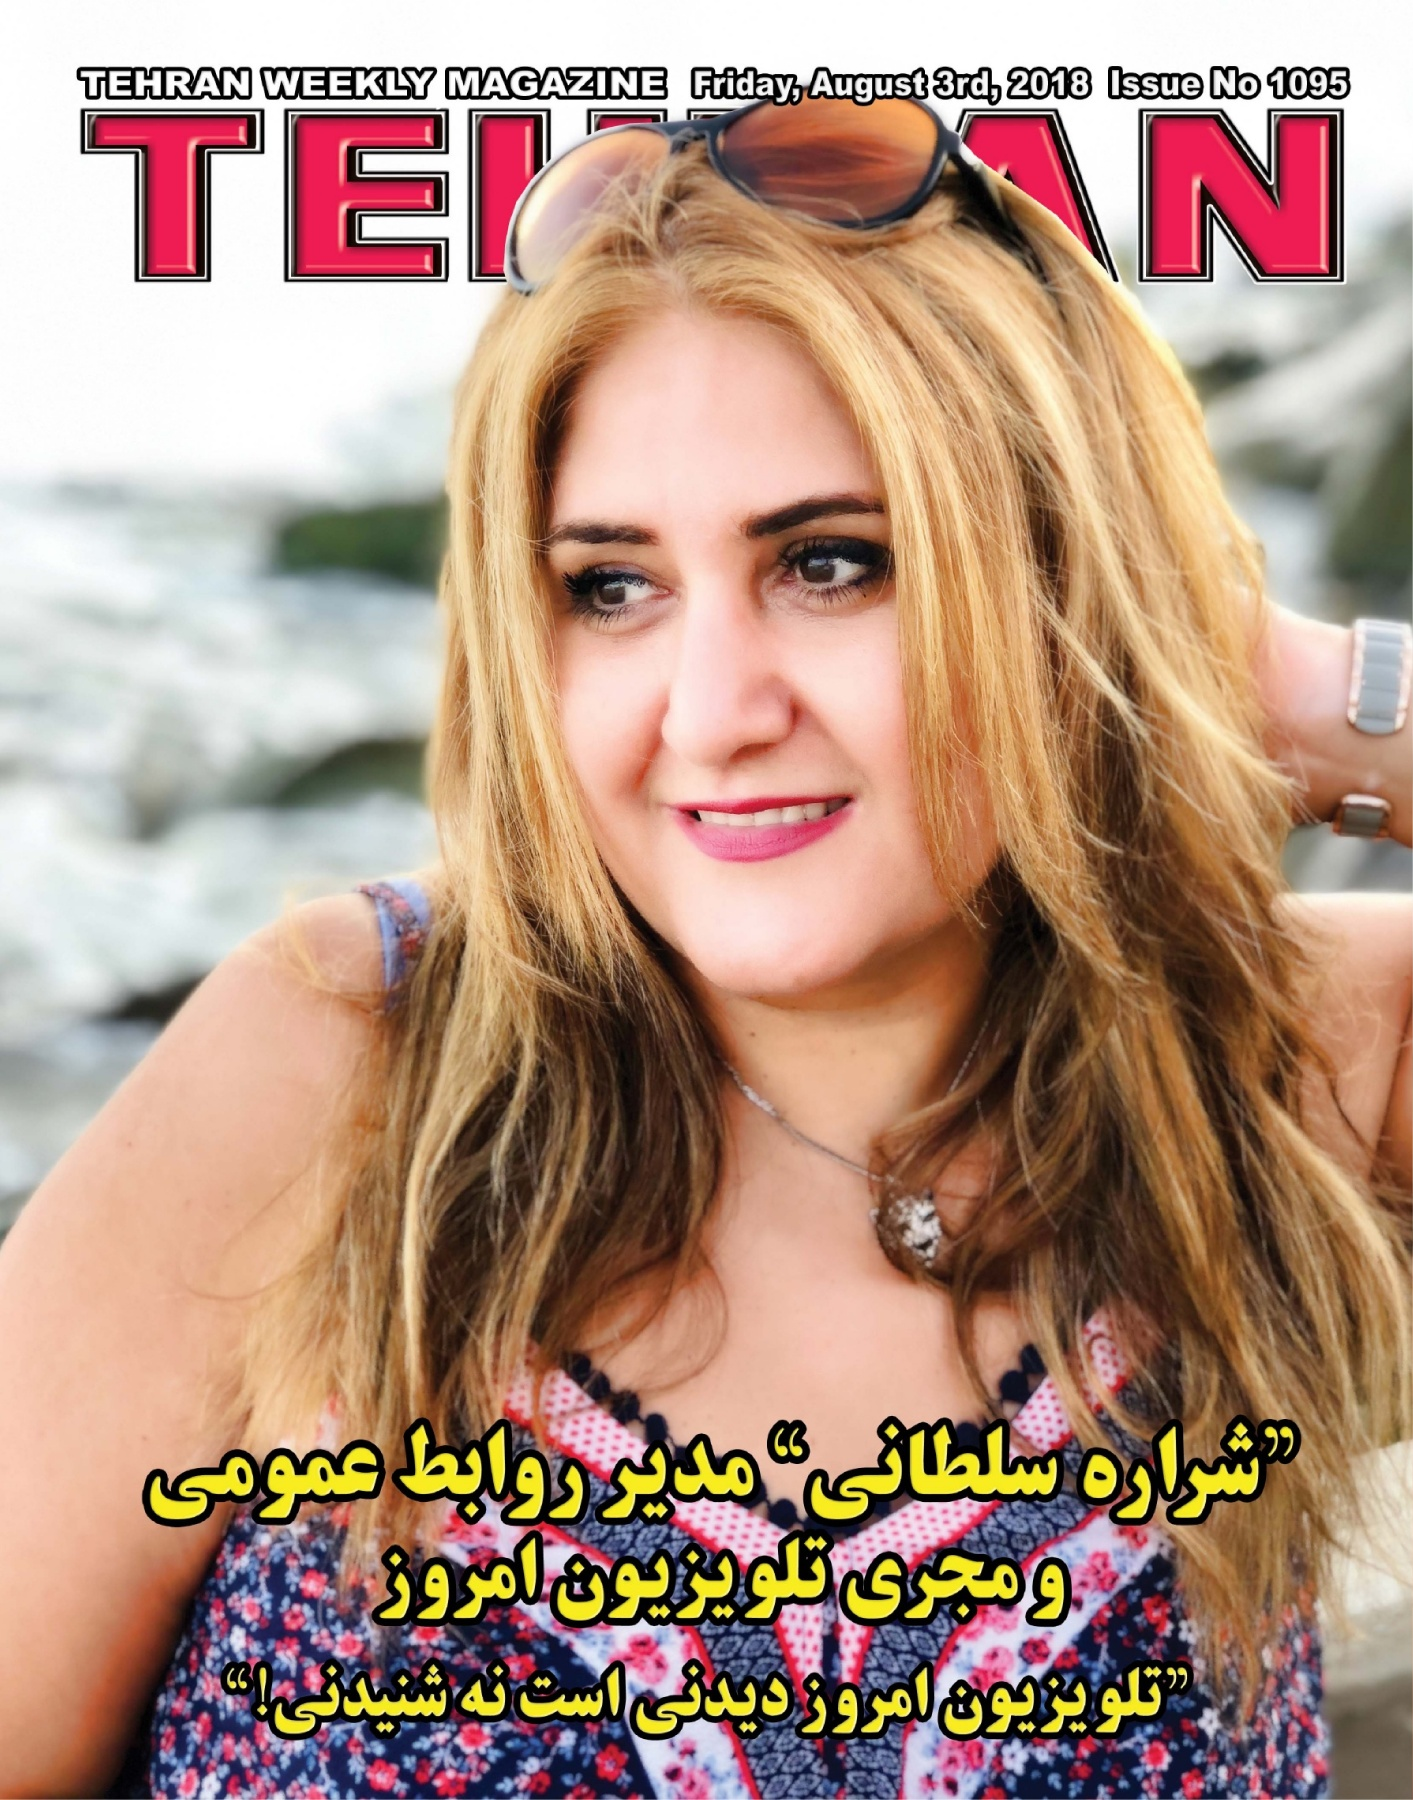 TEHRAN MAGAZINE Official Website – Page 8 – Powered by Shahbod Noori